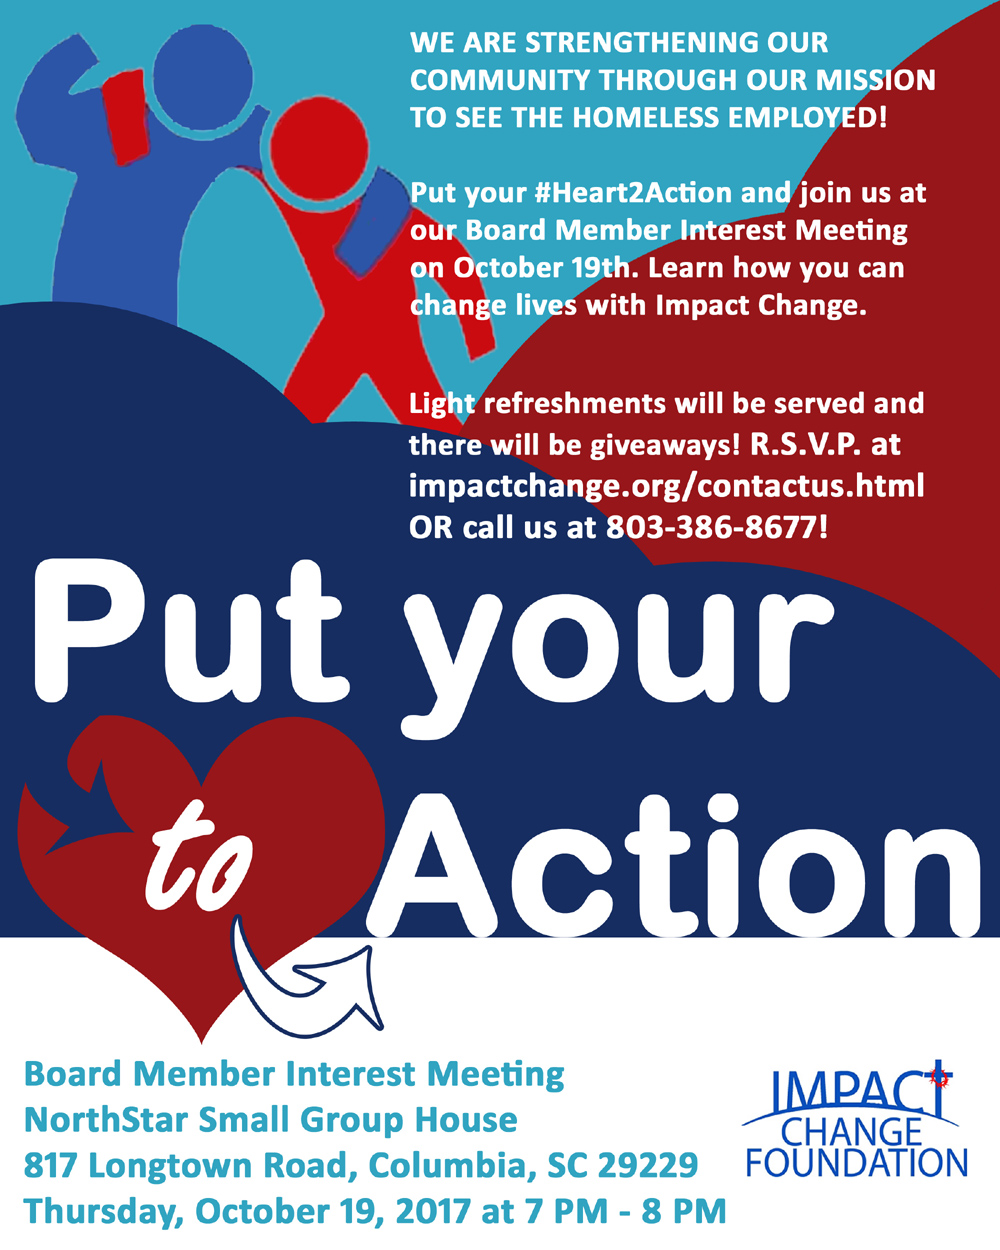 Put your #Heart2Action - Join a Growing Organization!